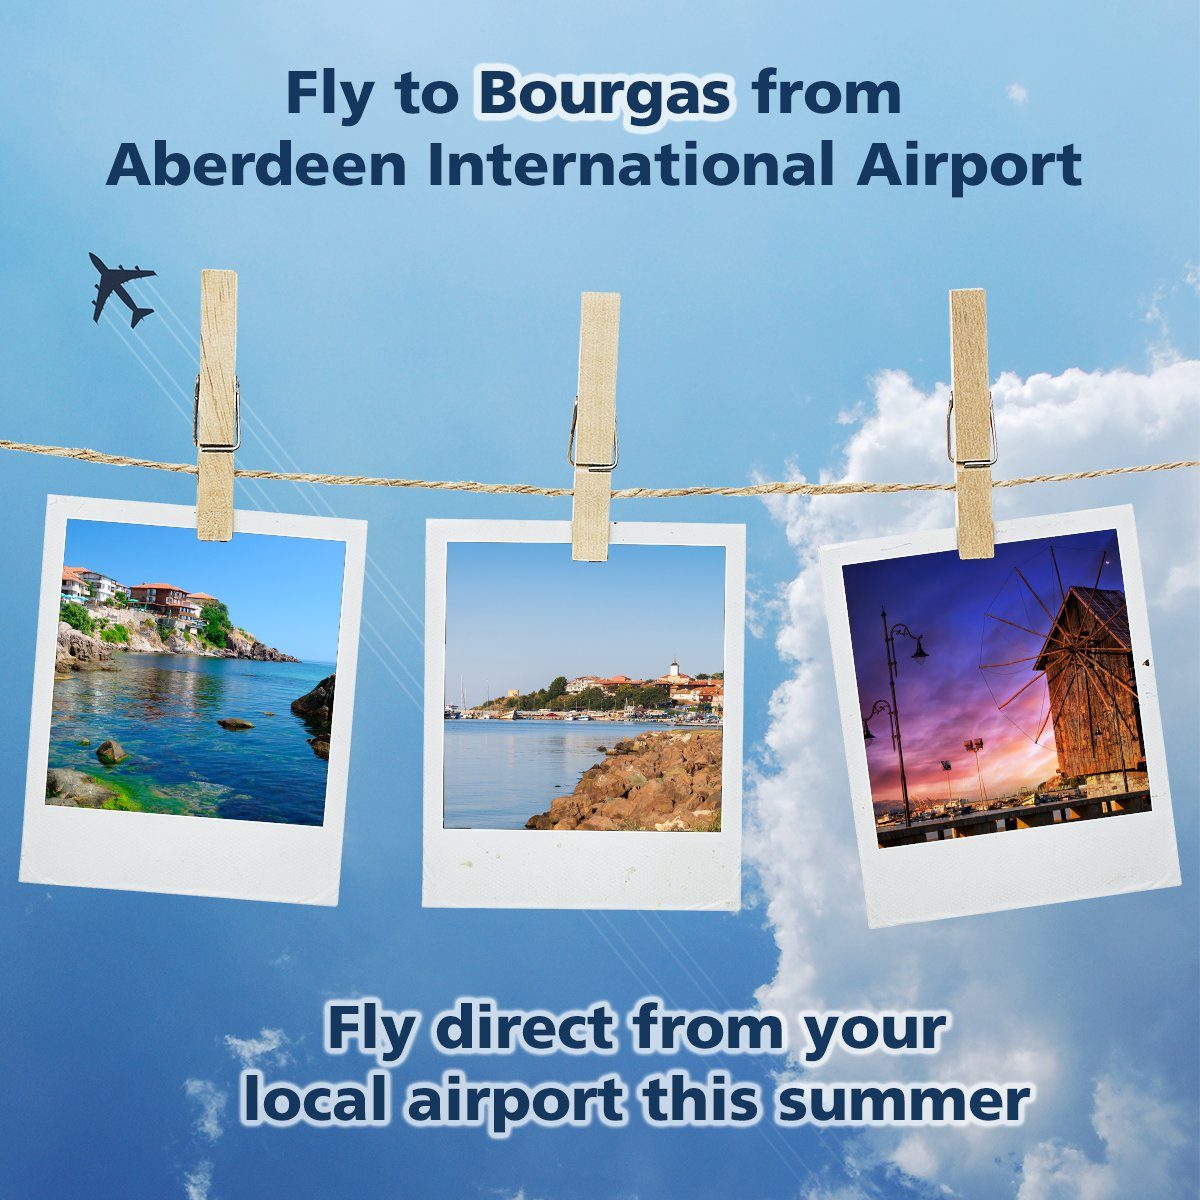 Fly direct to Bourgas from your local airport this summer!